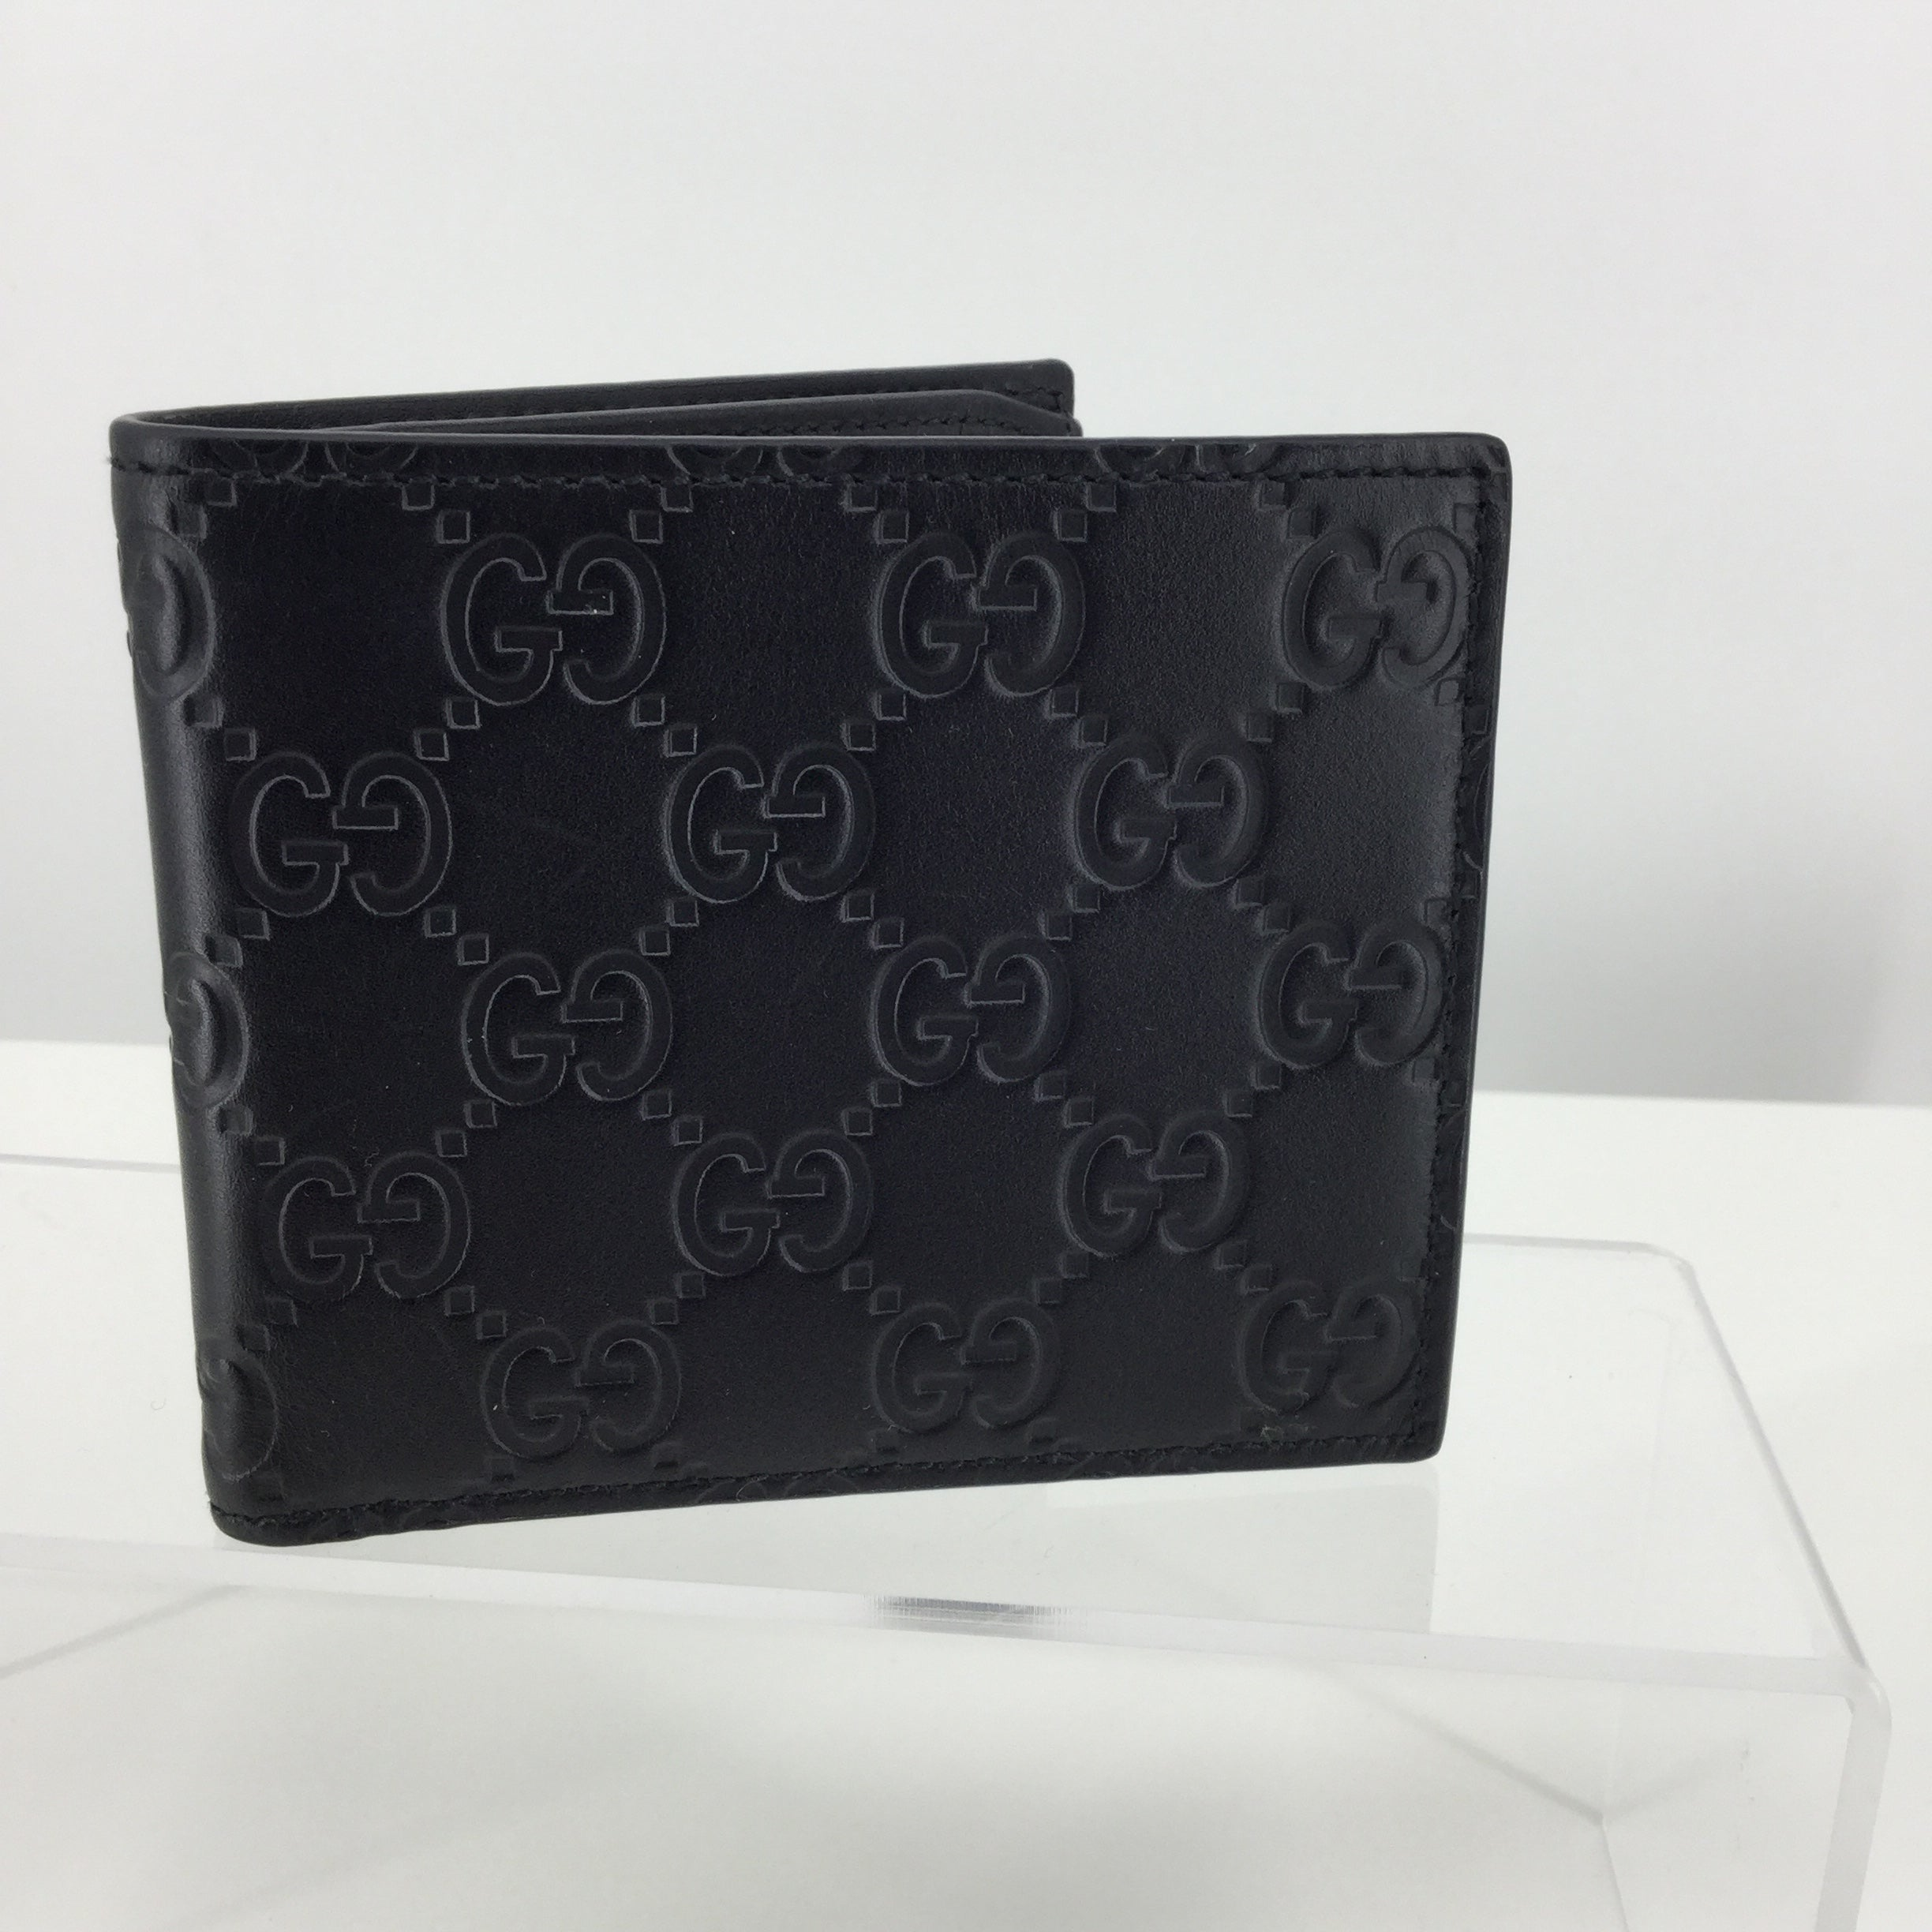 ACCESSORIES,PURSES AND HANDBAGS - BUFFED LEATHER BIFOLD WALLET IN BLACK. LOGO PATTERN EMBOSSED THROUGHOUT. EMBOSSED LOGO, CARD SLOTS, AND NOTE SLOTS AT INTERIOR. TONAL TEXTILE LINING. TONAL STITCHING. APPROX. 4.5